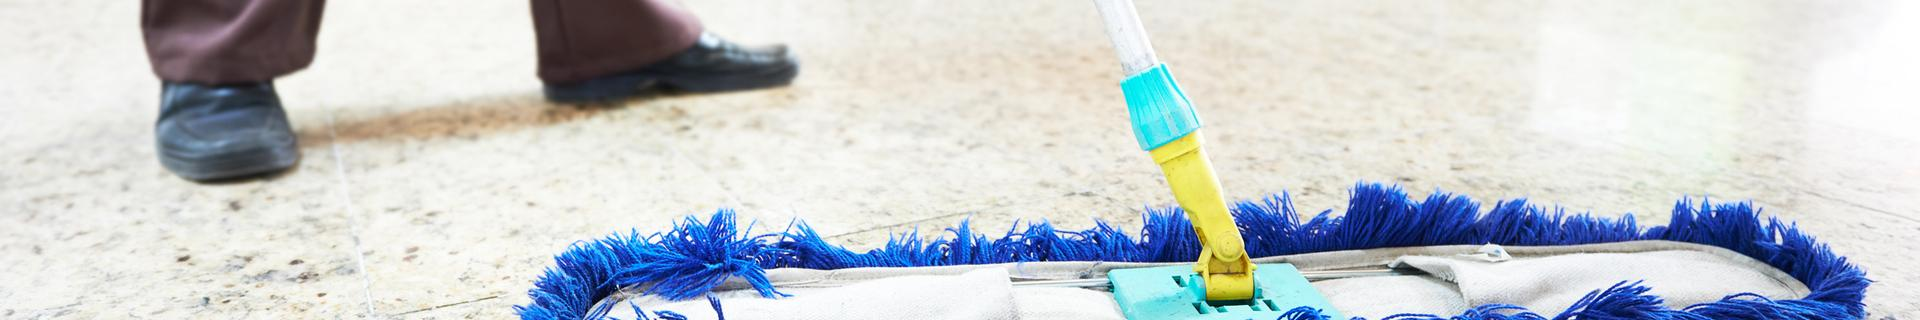 A cleaner using a mop